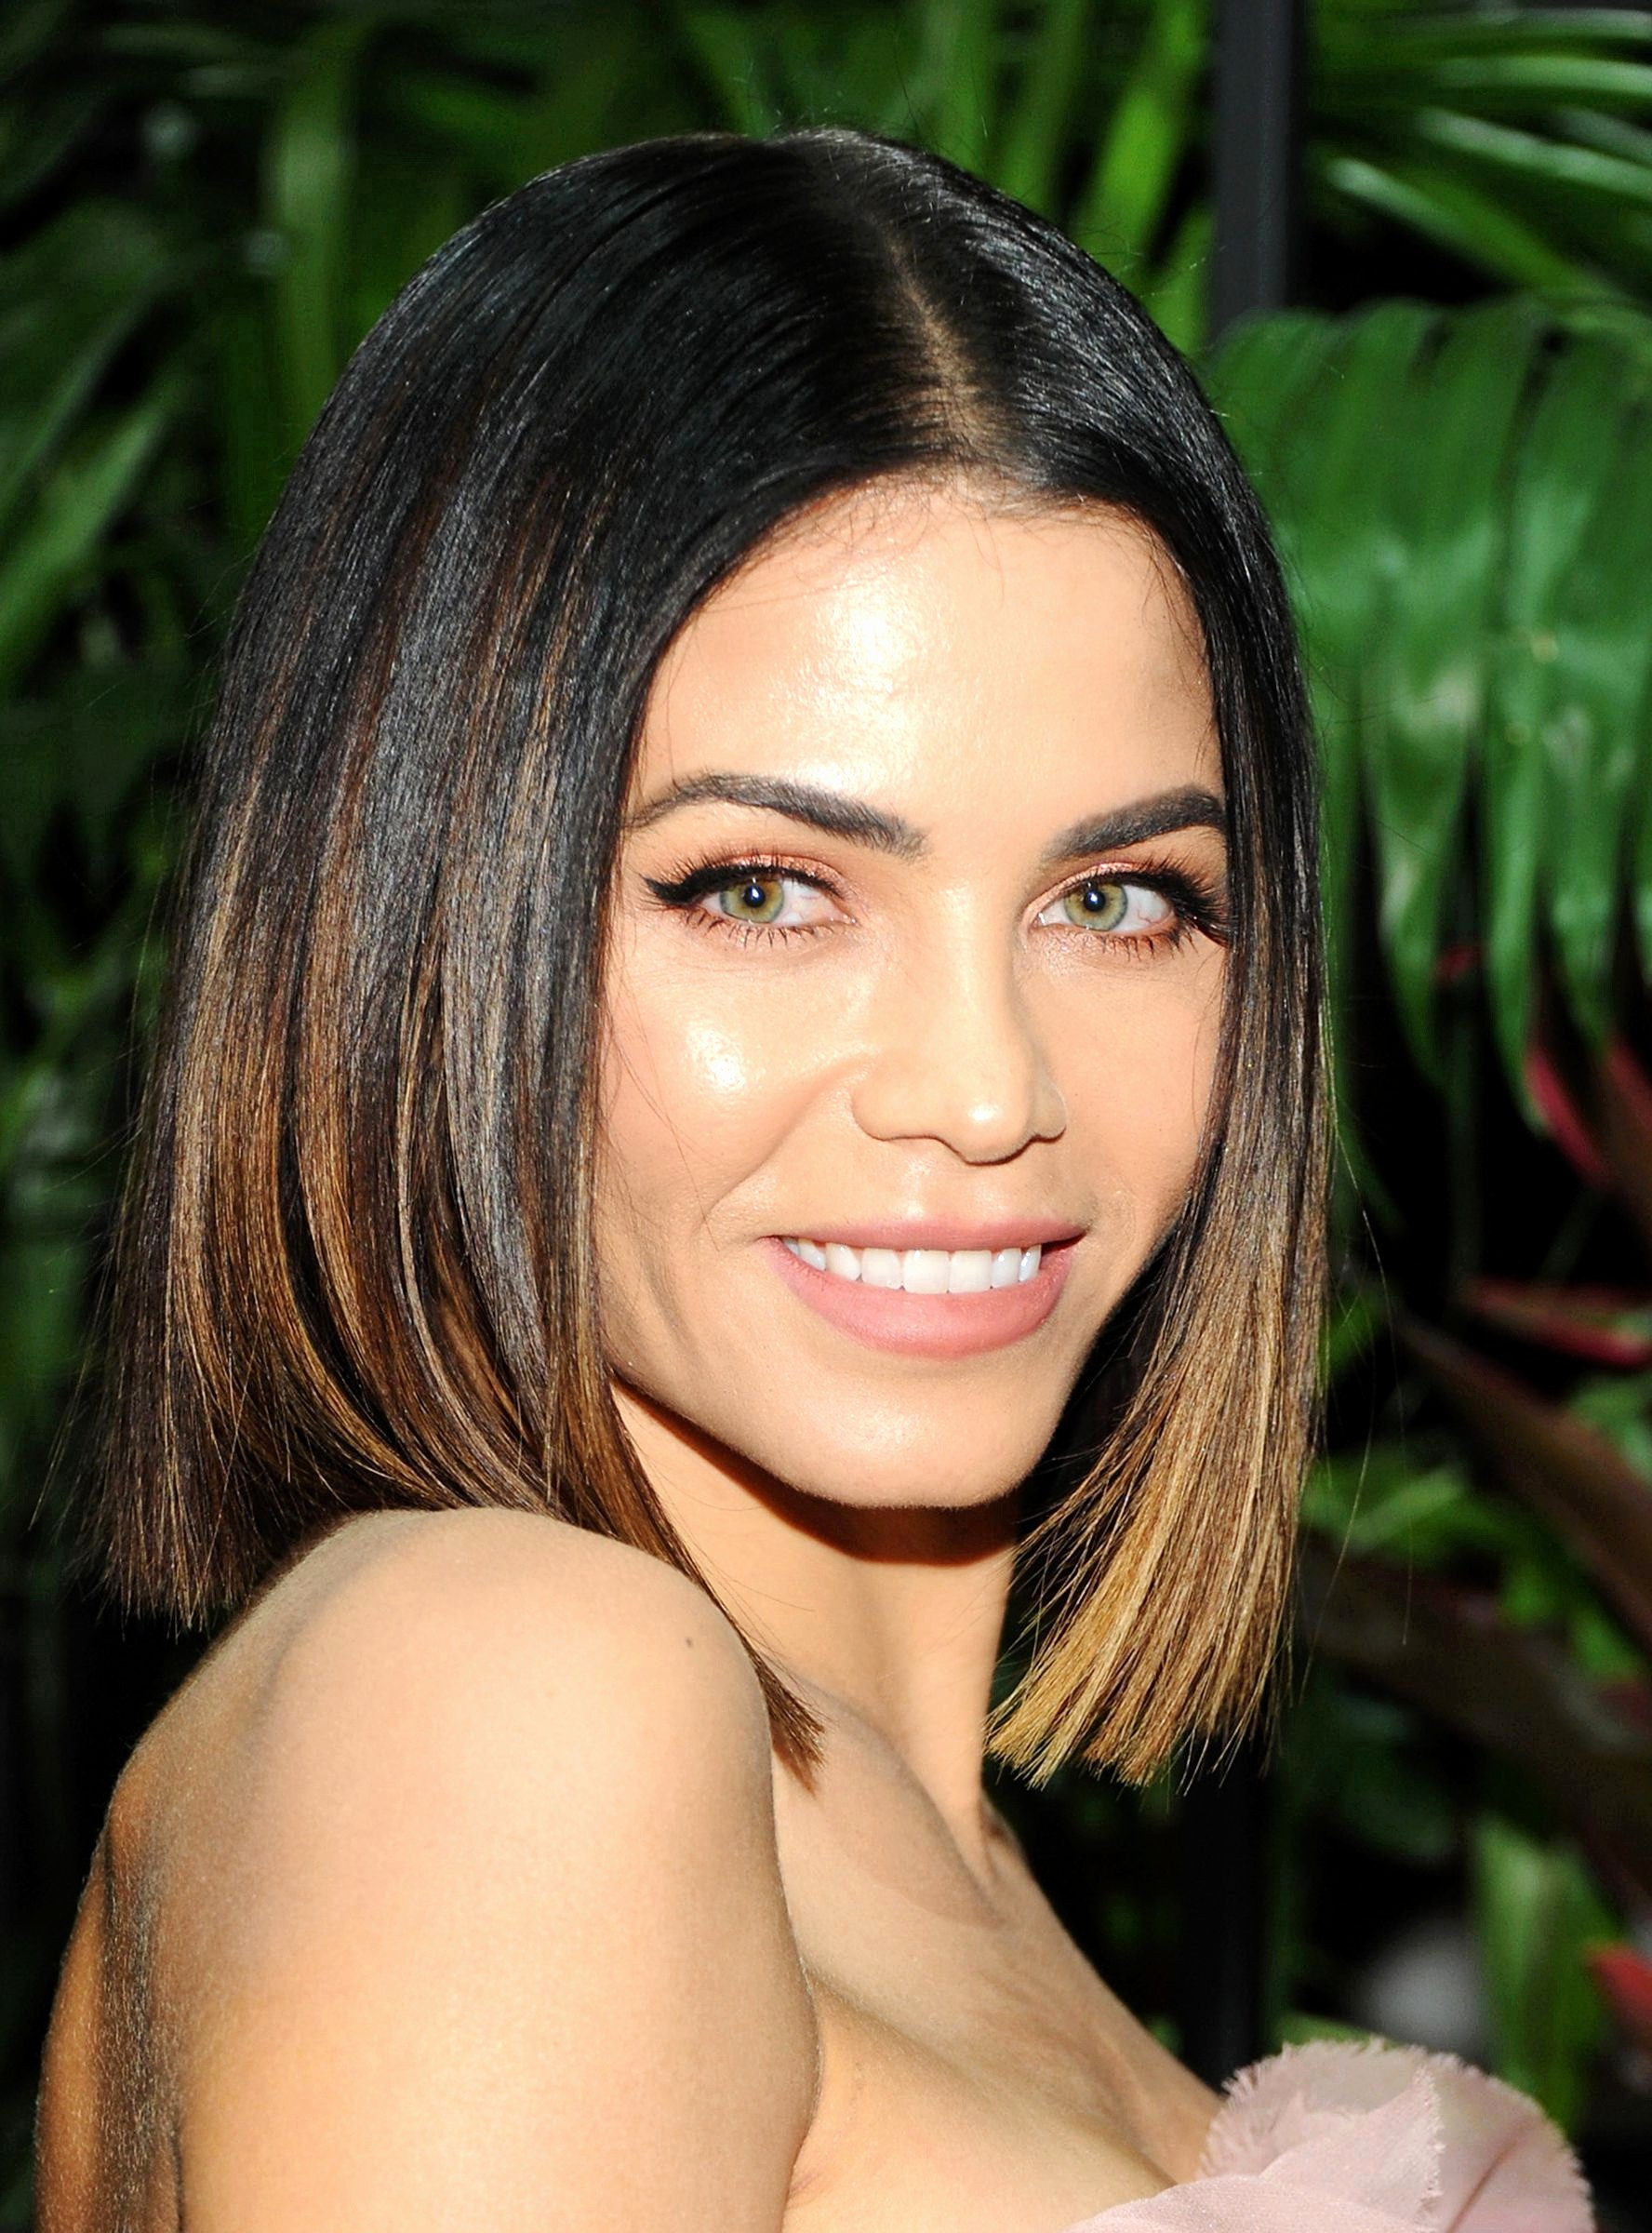 Best Medium Length Haircuts For Thick Hair 20 Flattering Hairstyles With Latest Medium Hairstyles For Oval Faces And Thick Hair (View 3 of 20)